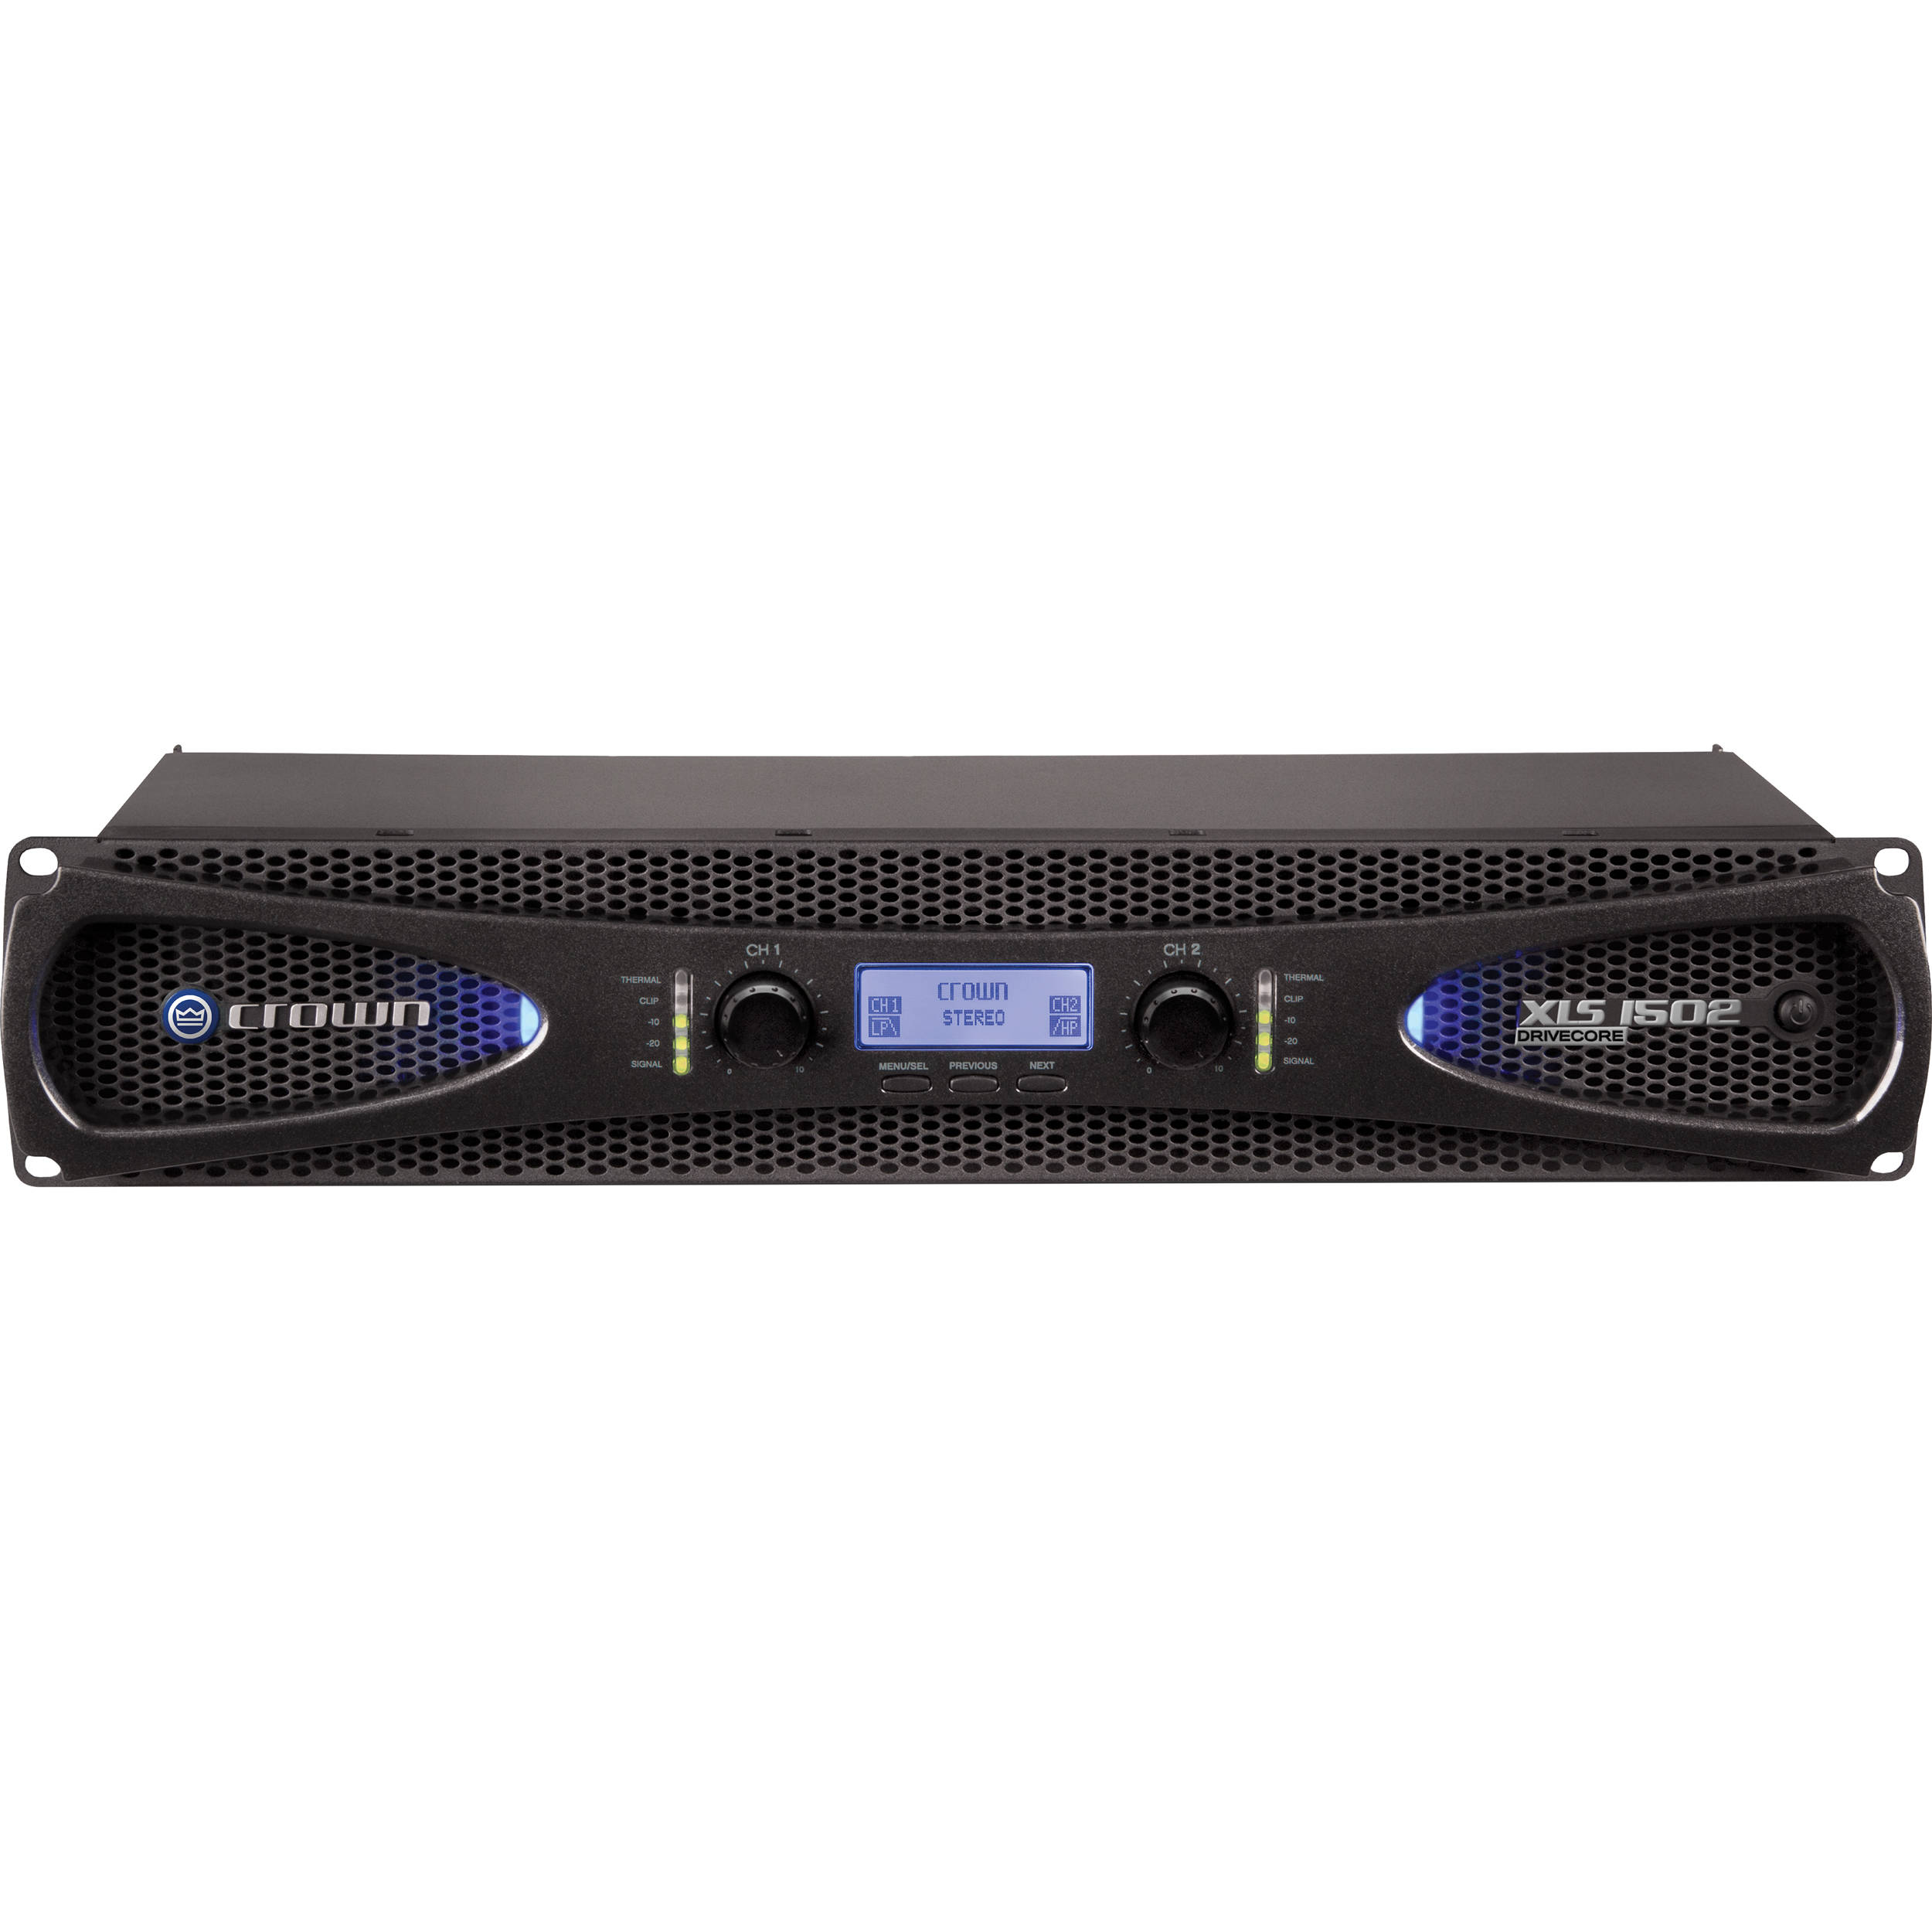 Power Amplifiers Bh Photo Video 2 X 20 Watt Car Amplifier Crown Audio Xls 1502 Stereo 525w At 4 Ohm